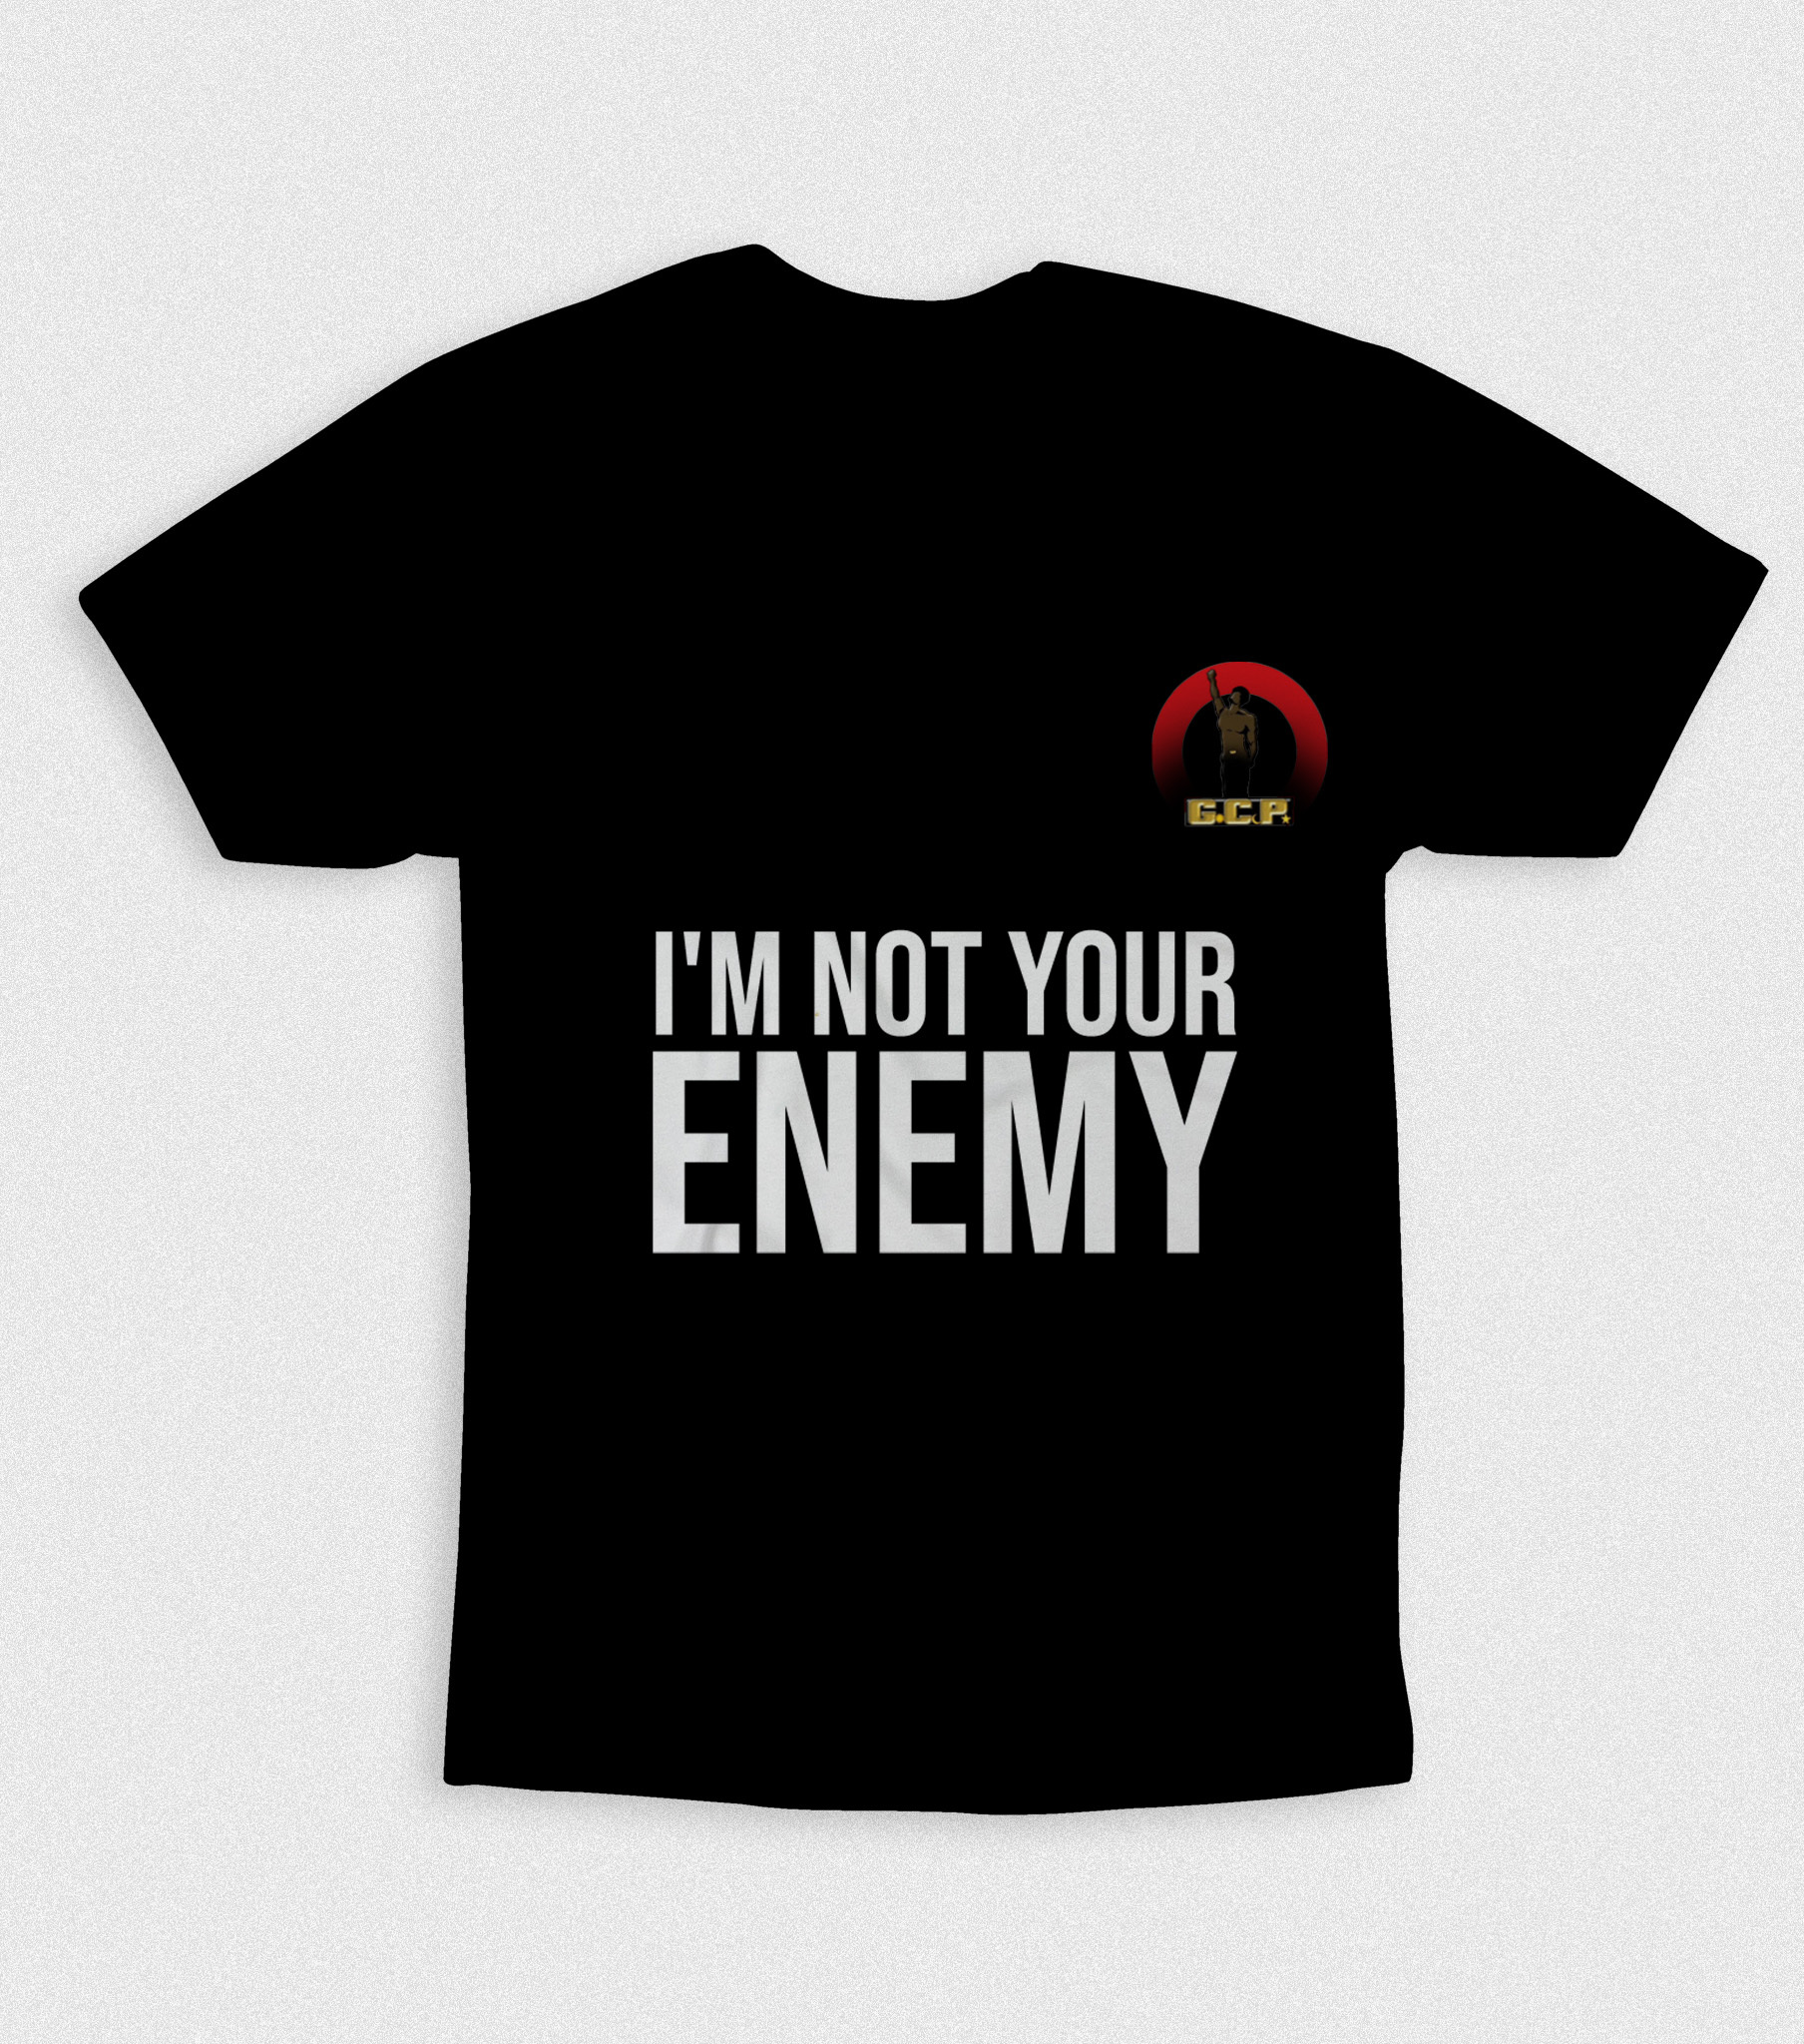 i_m_not_your_enemy_t-shirt_black_r2-02